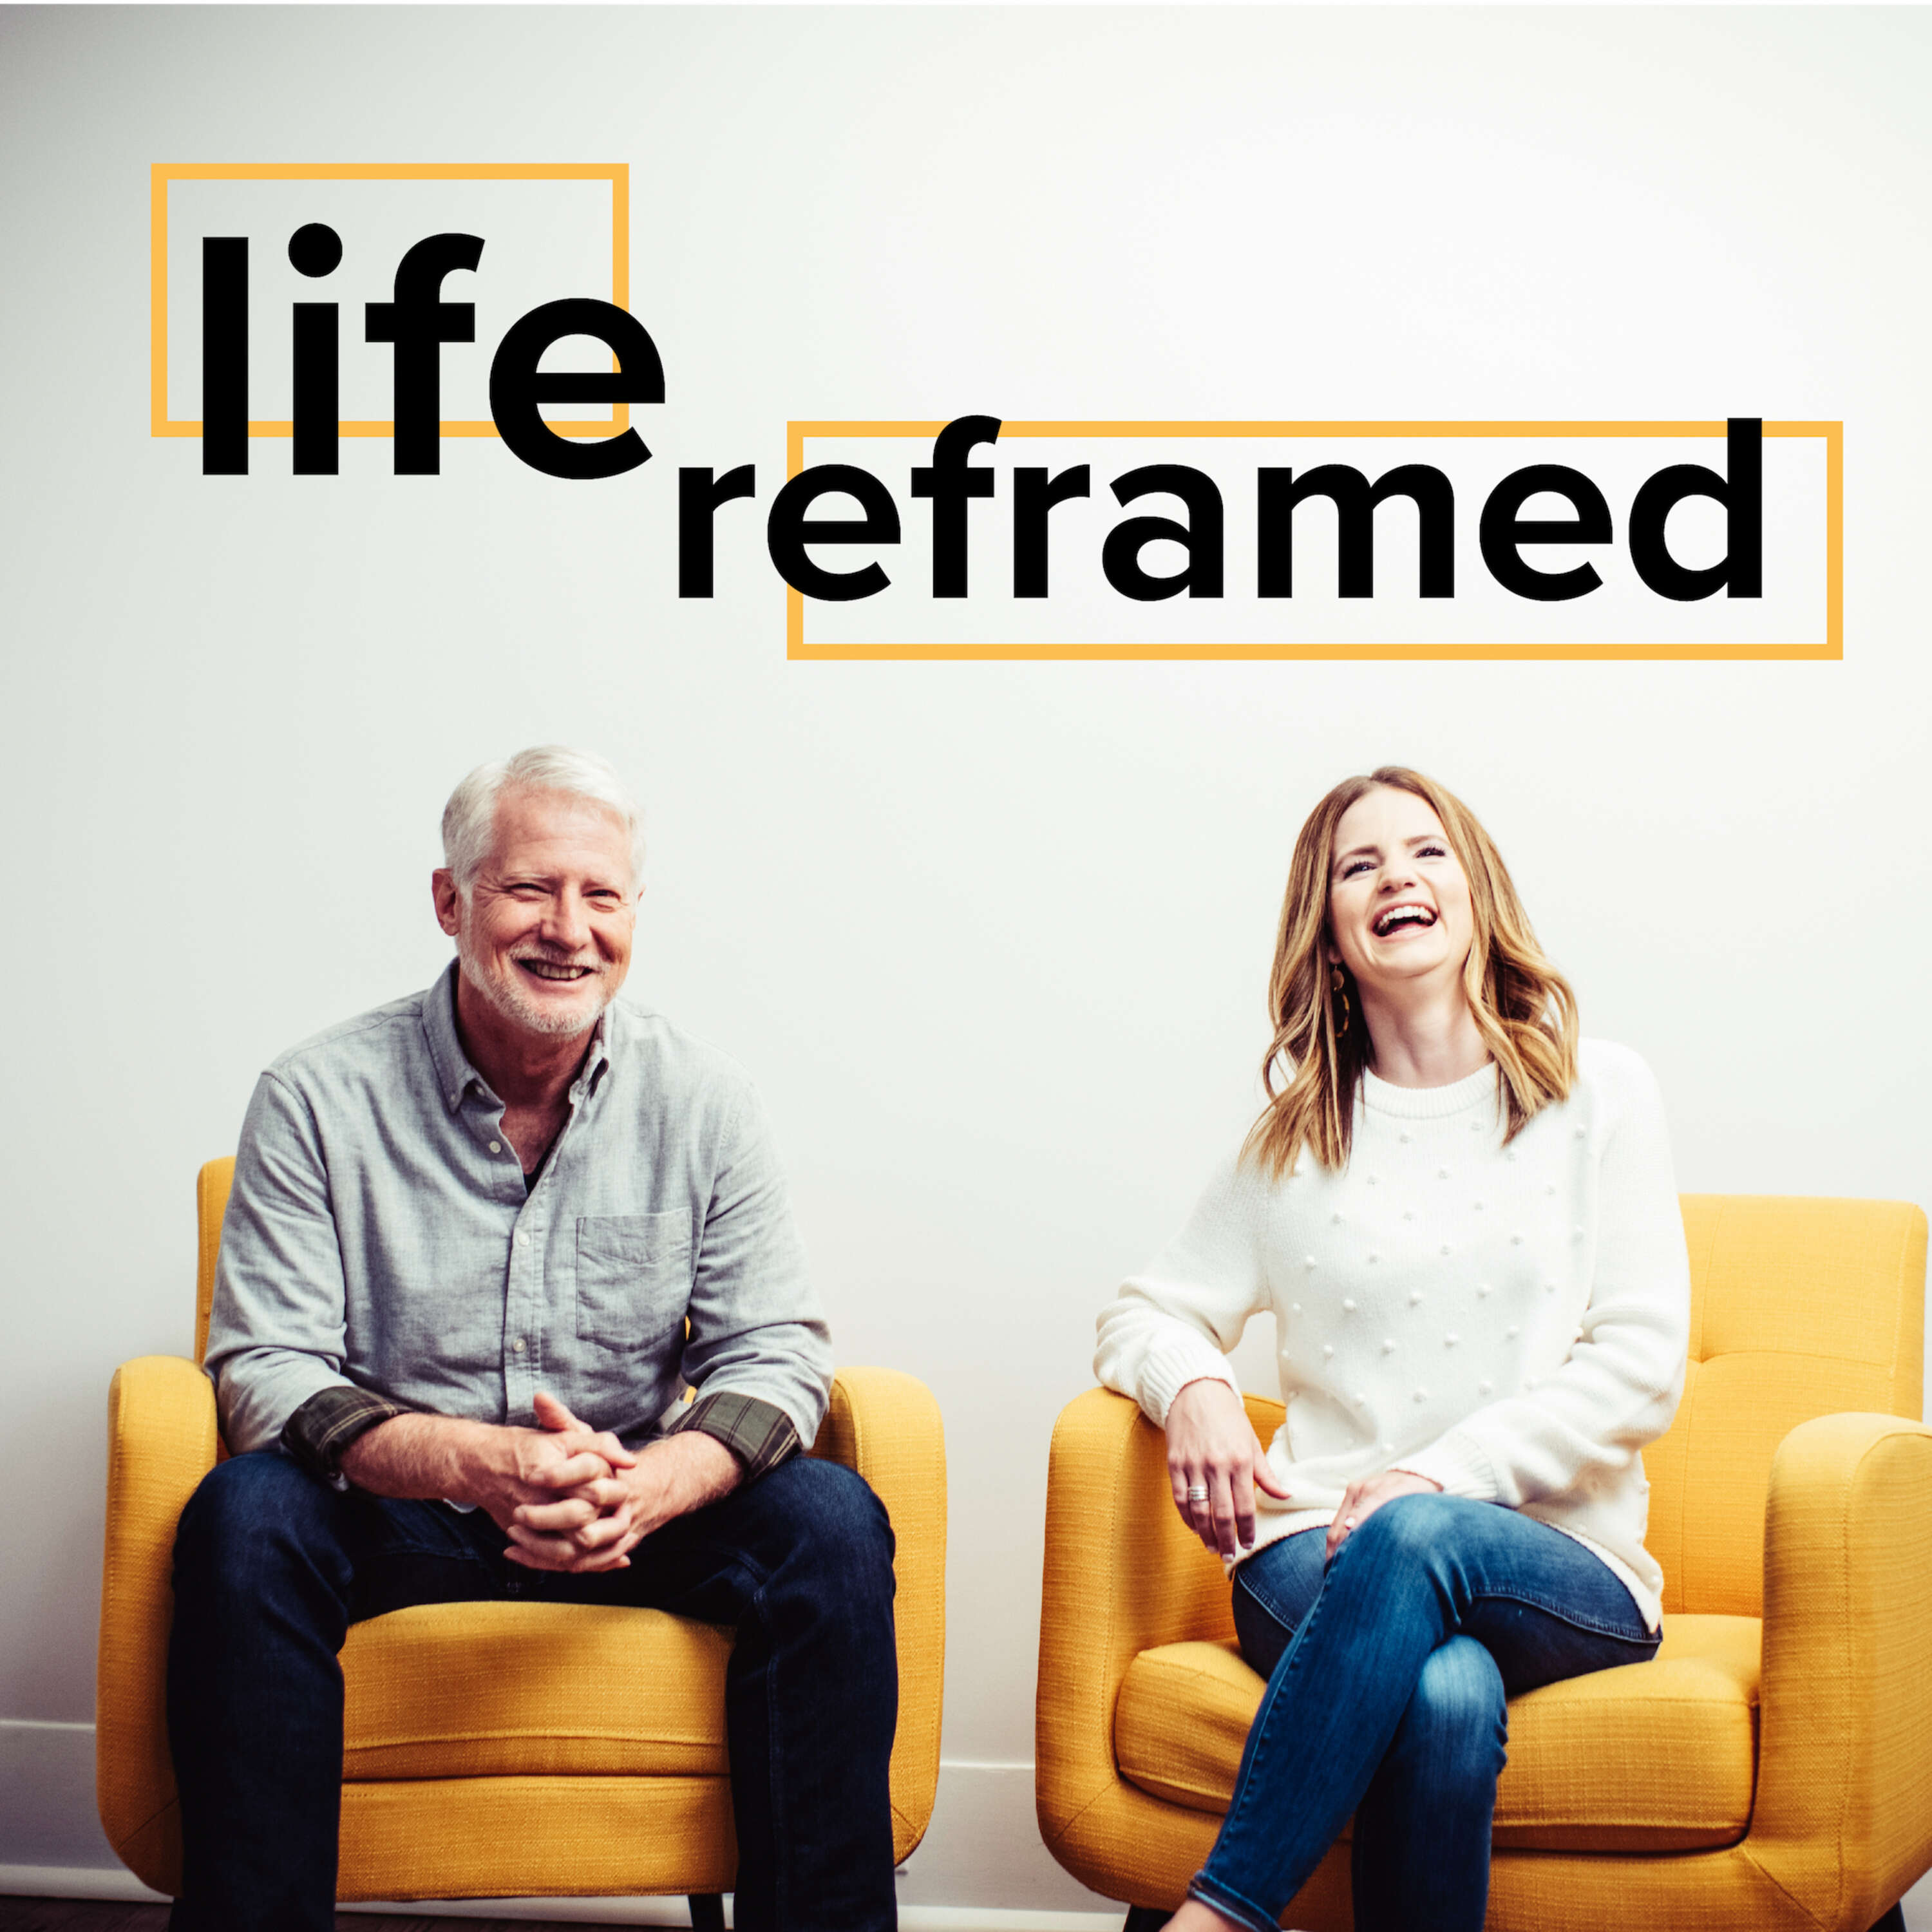 Life Reframed podcast show image